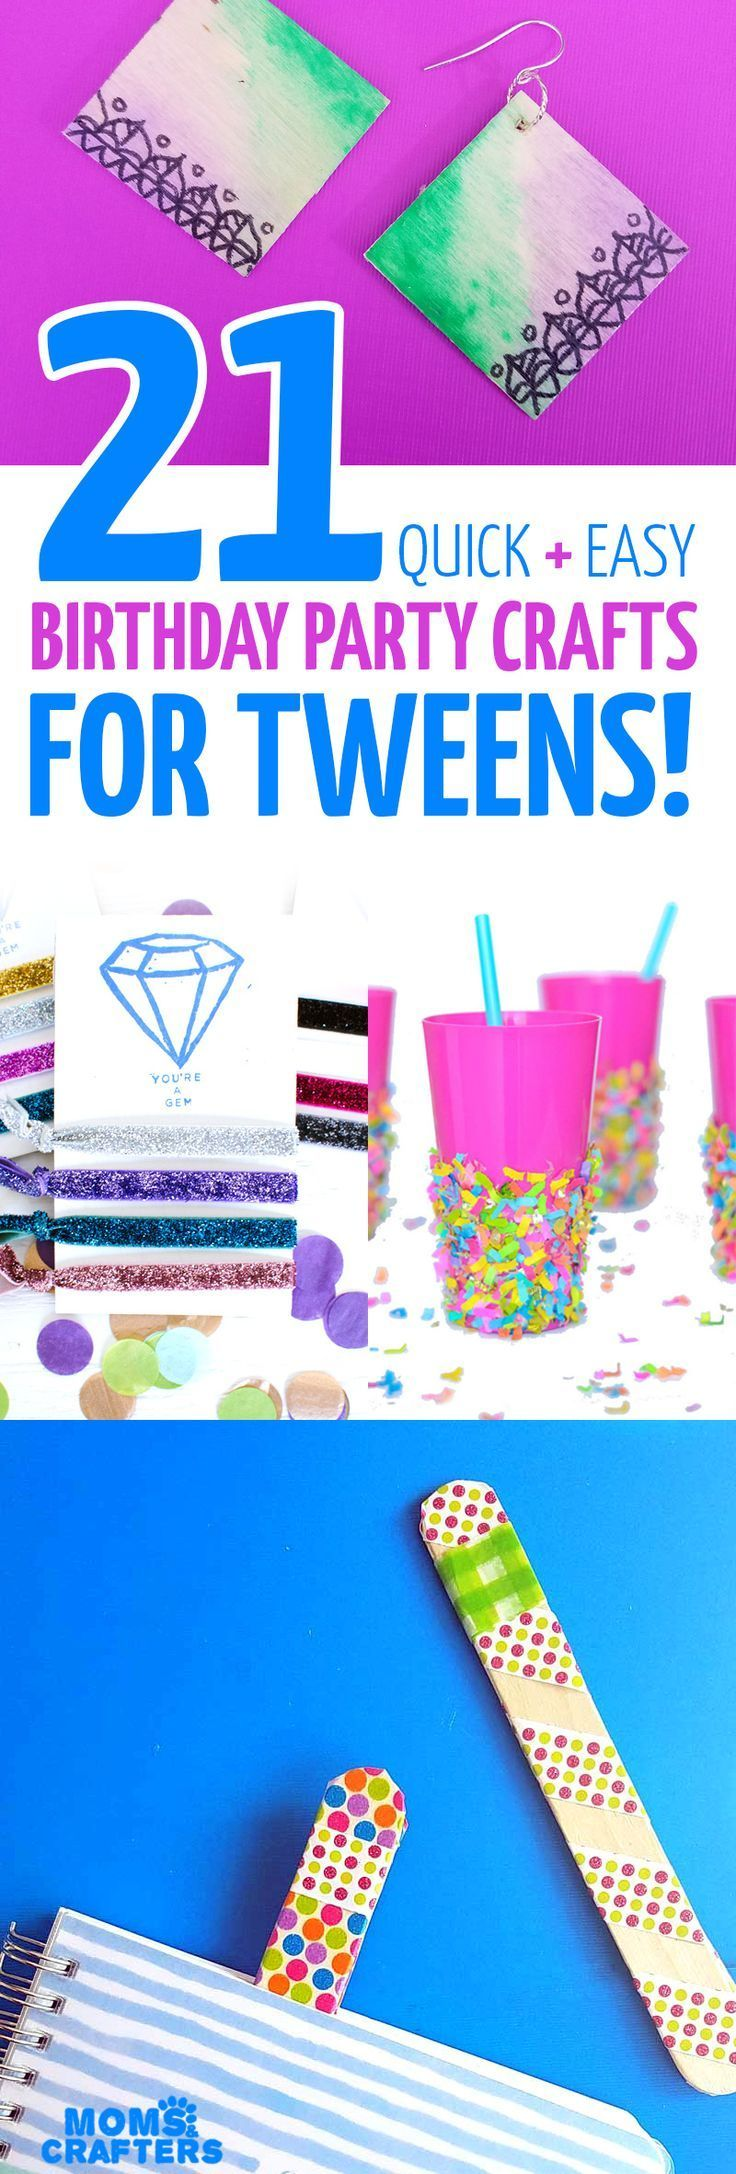 Try one of these cool birthday party crafts for tweens! - Birthday party for teens, Birthday party crafts, Birthday party activities, Tween birthday, Tween birthday party, Birthday party games - they're quick, easy, and fun!